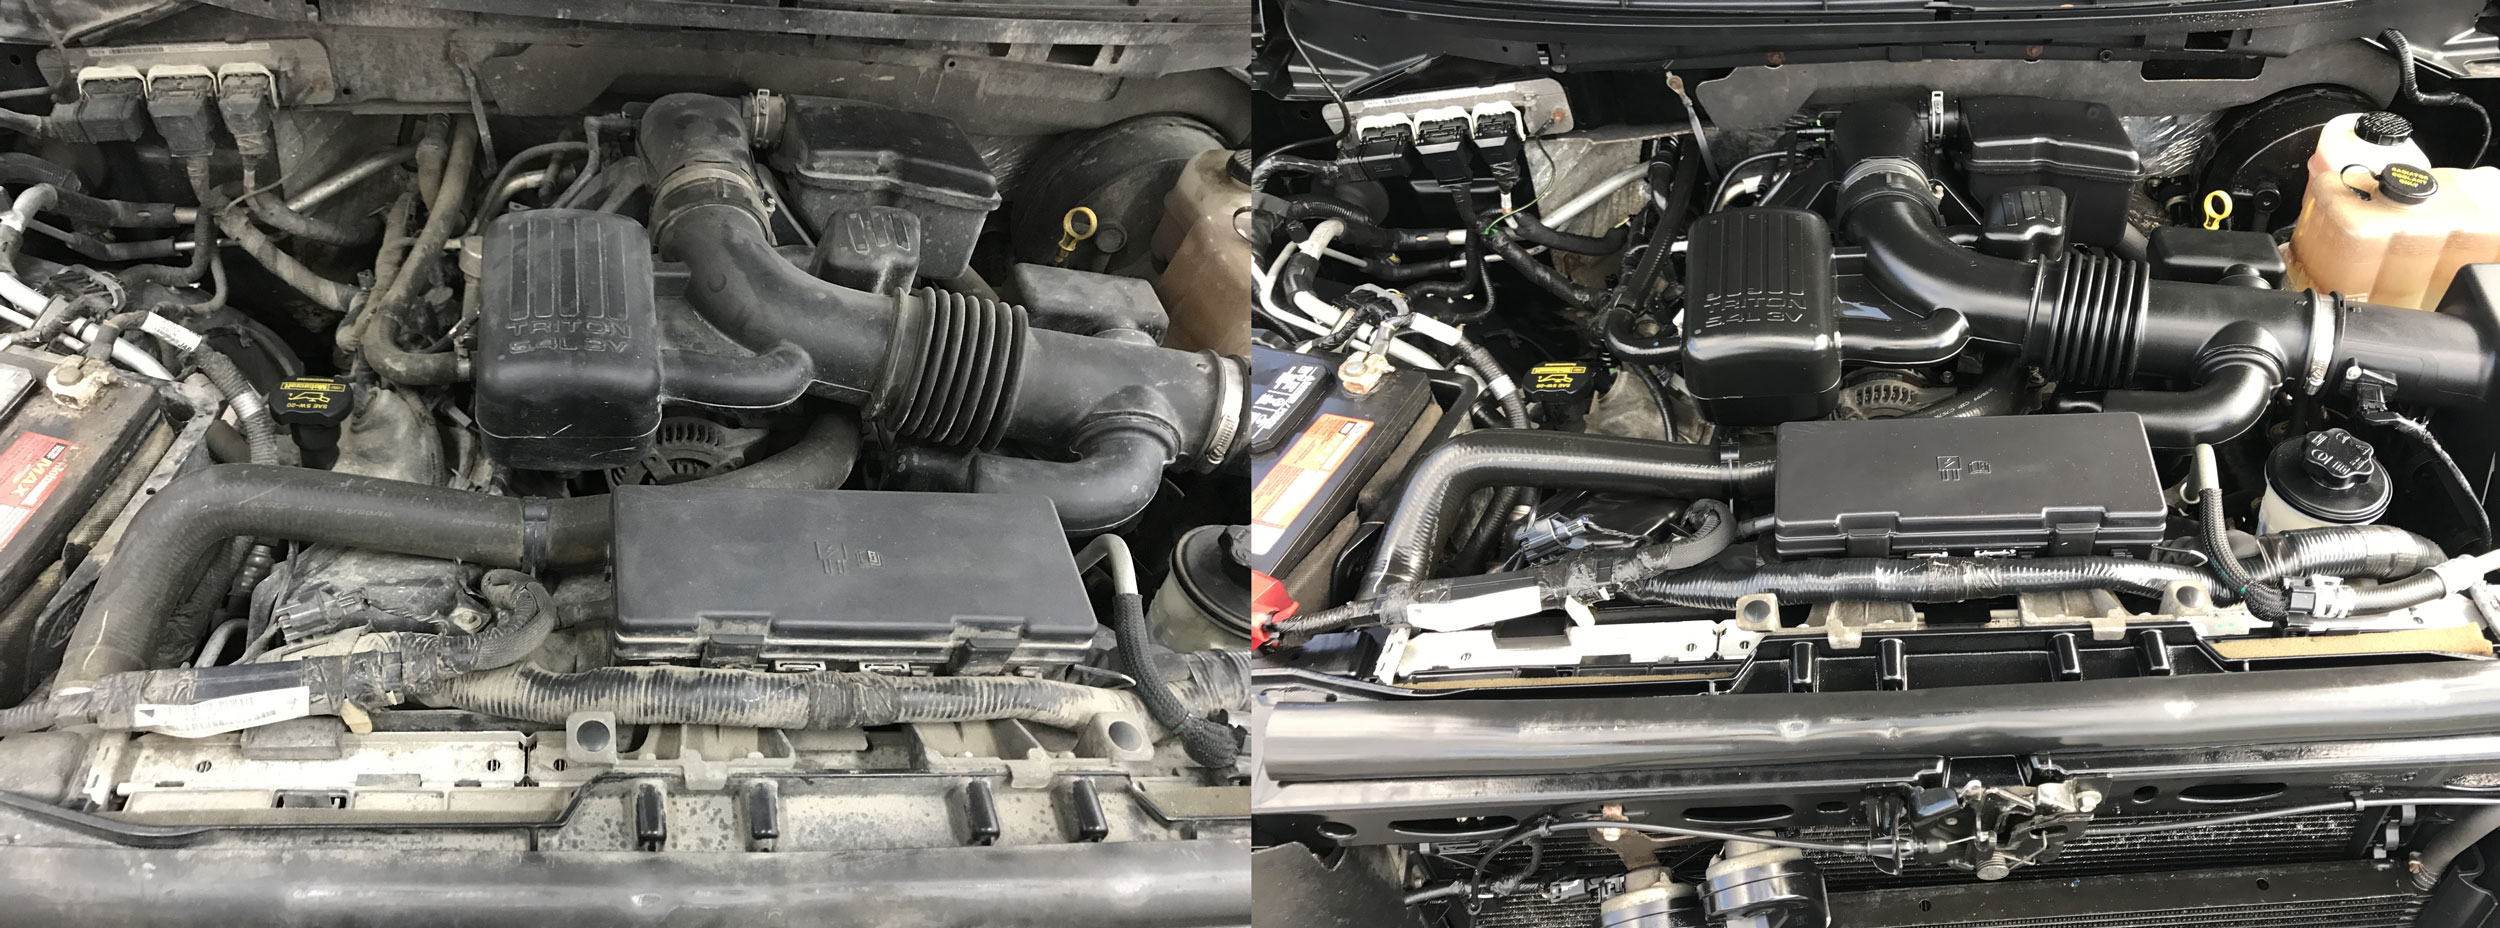 Engine-before-and-after-combo-Sept-22-2017.jpg